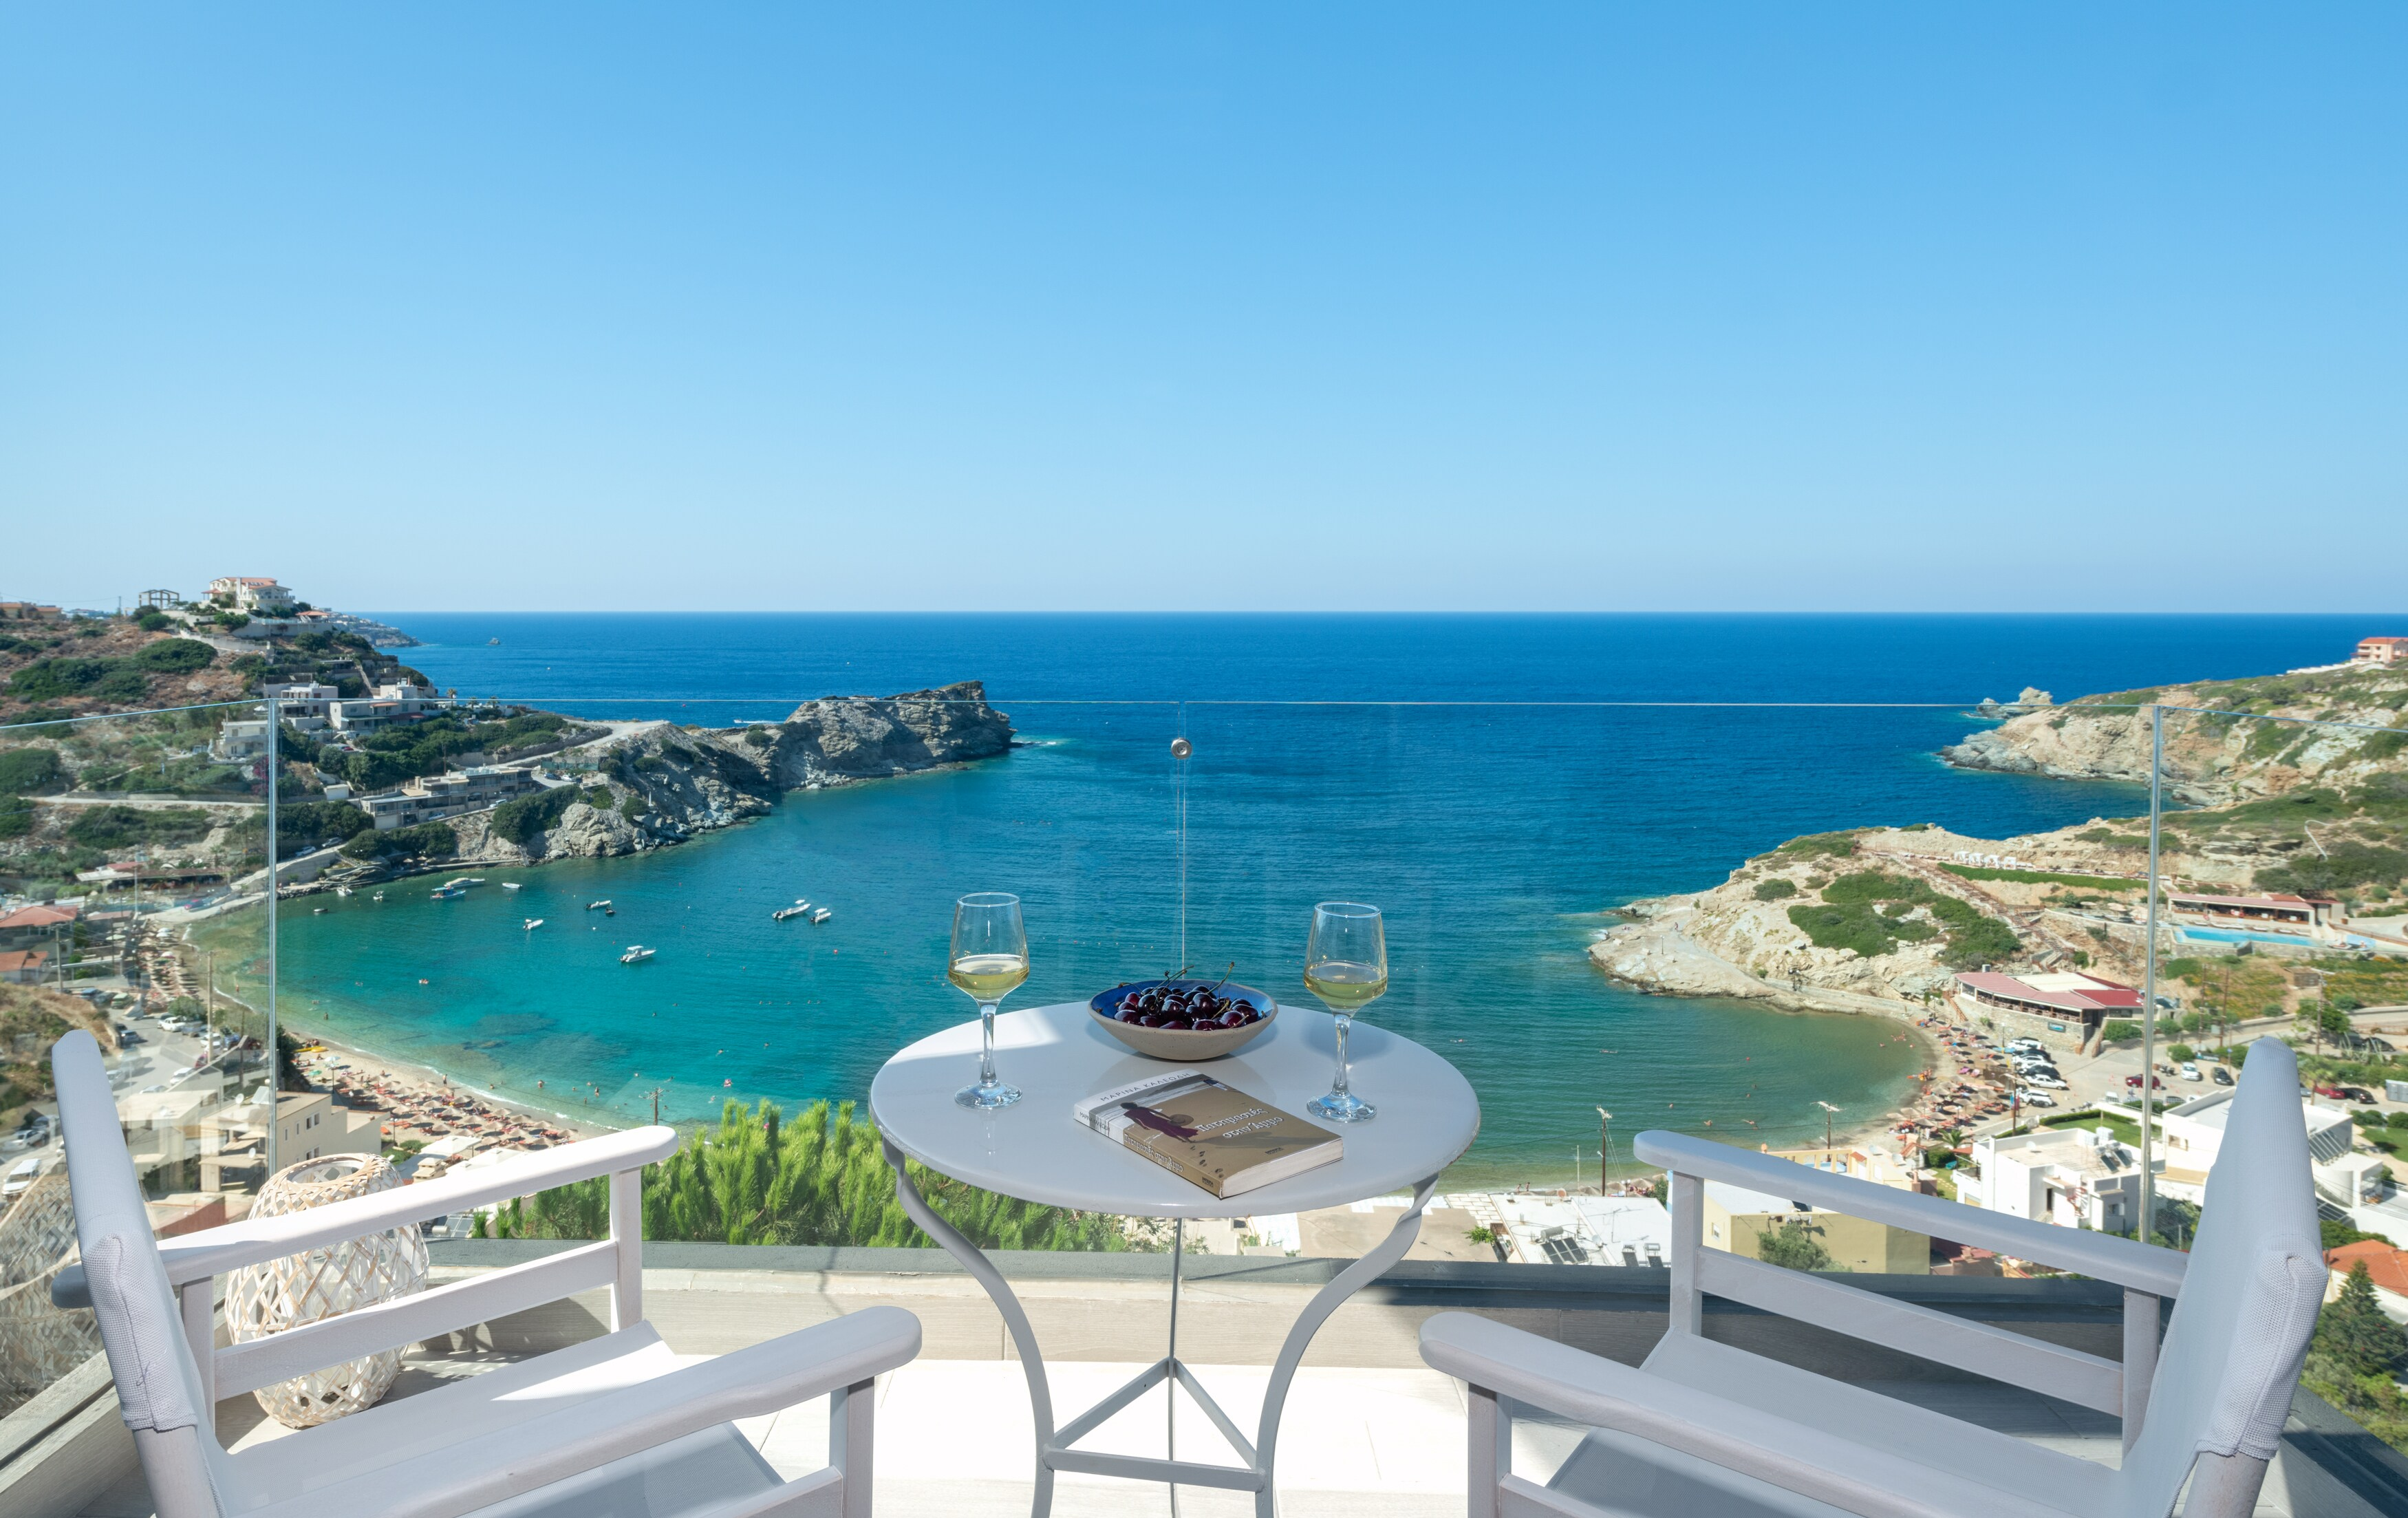 Property Image 2 - Magical villa with a private infinity pool